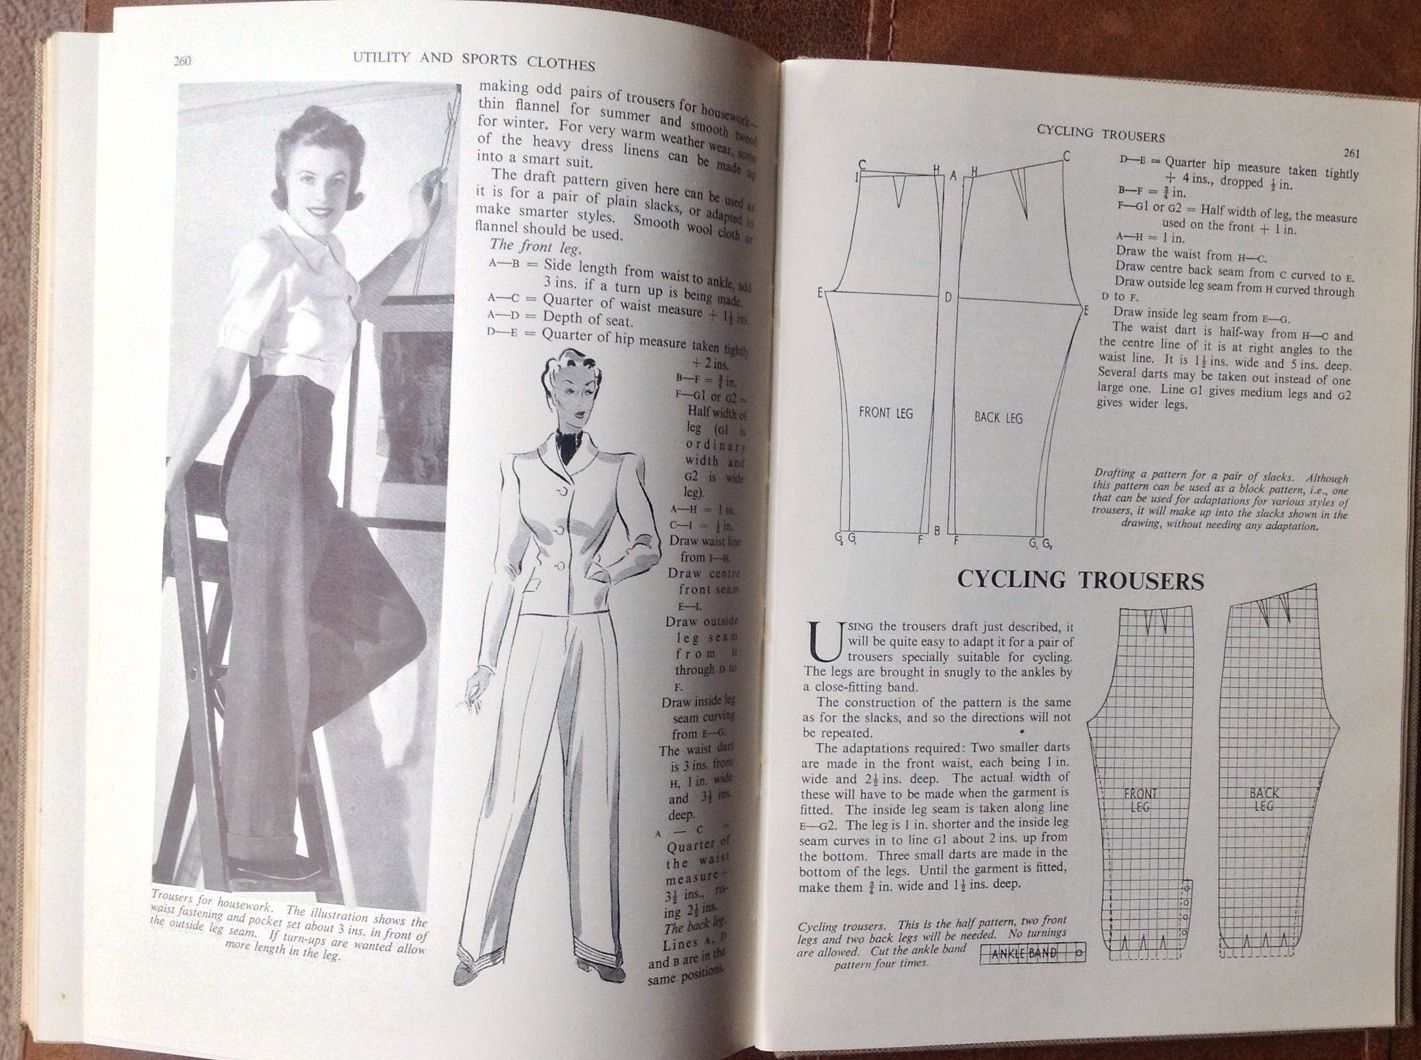 THE PICTORIAL GUIDE TO MODERN HOME DRESSMAKING C.Franks 1940 Vintage Book Odhams | eBay